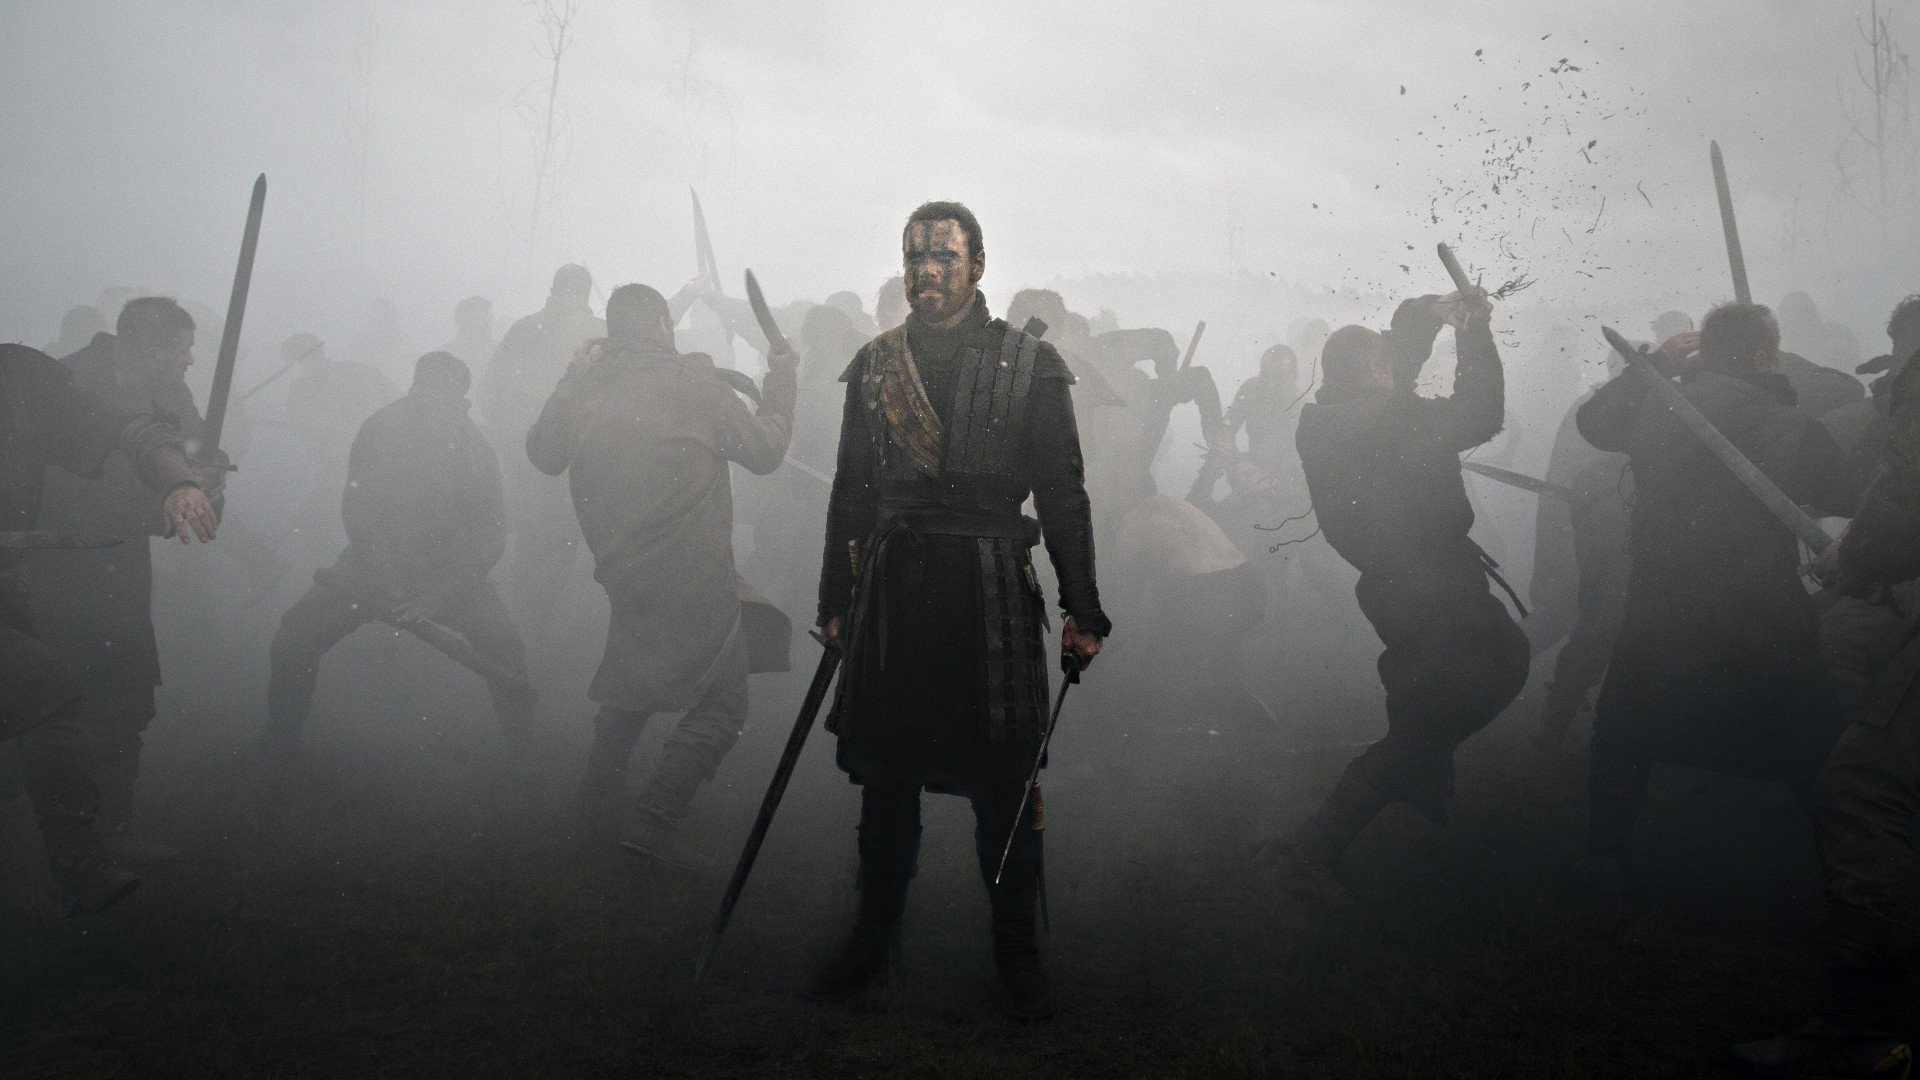 macbeth film review by daniel dewar